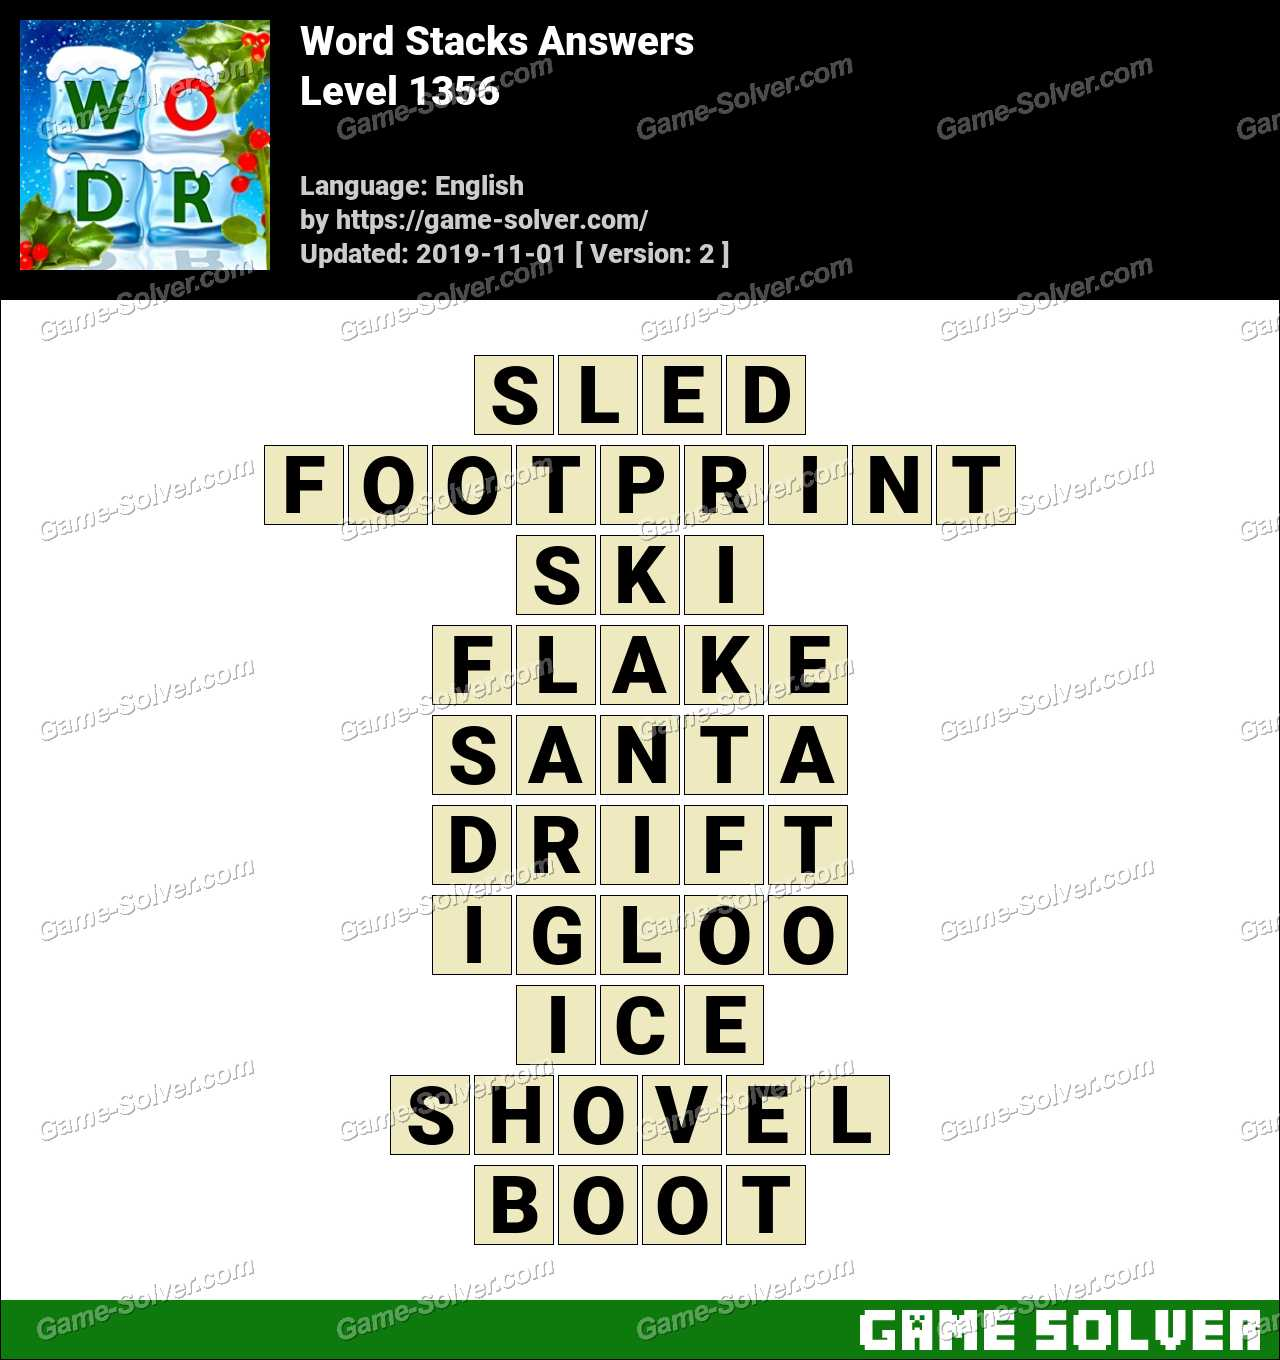 Word Stacks Level 1356 Answers